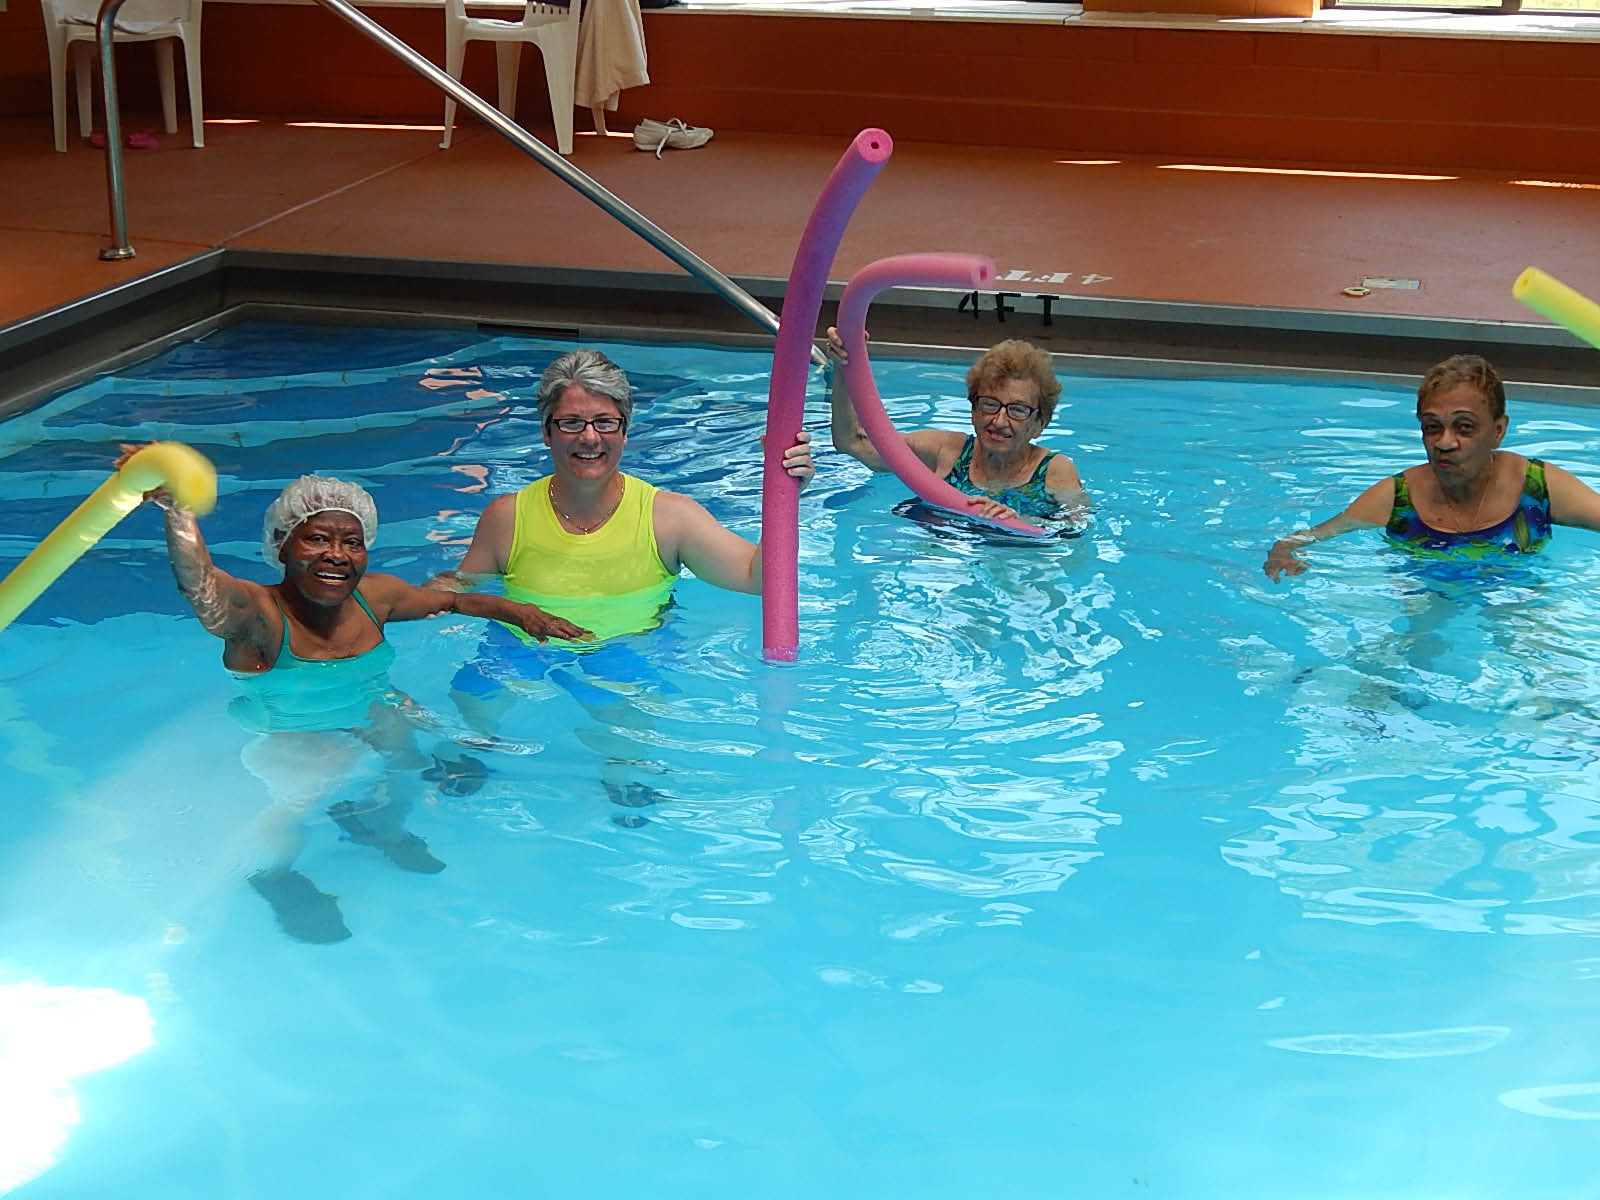 Aquacise class in our spacious pool at Waterford Estates.